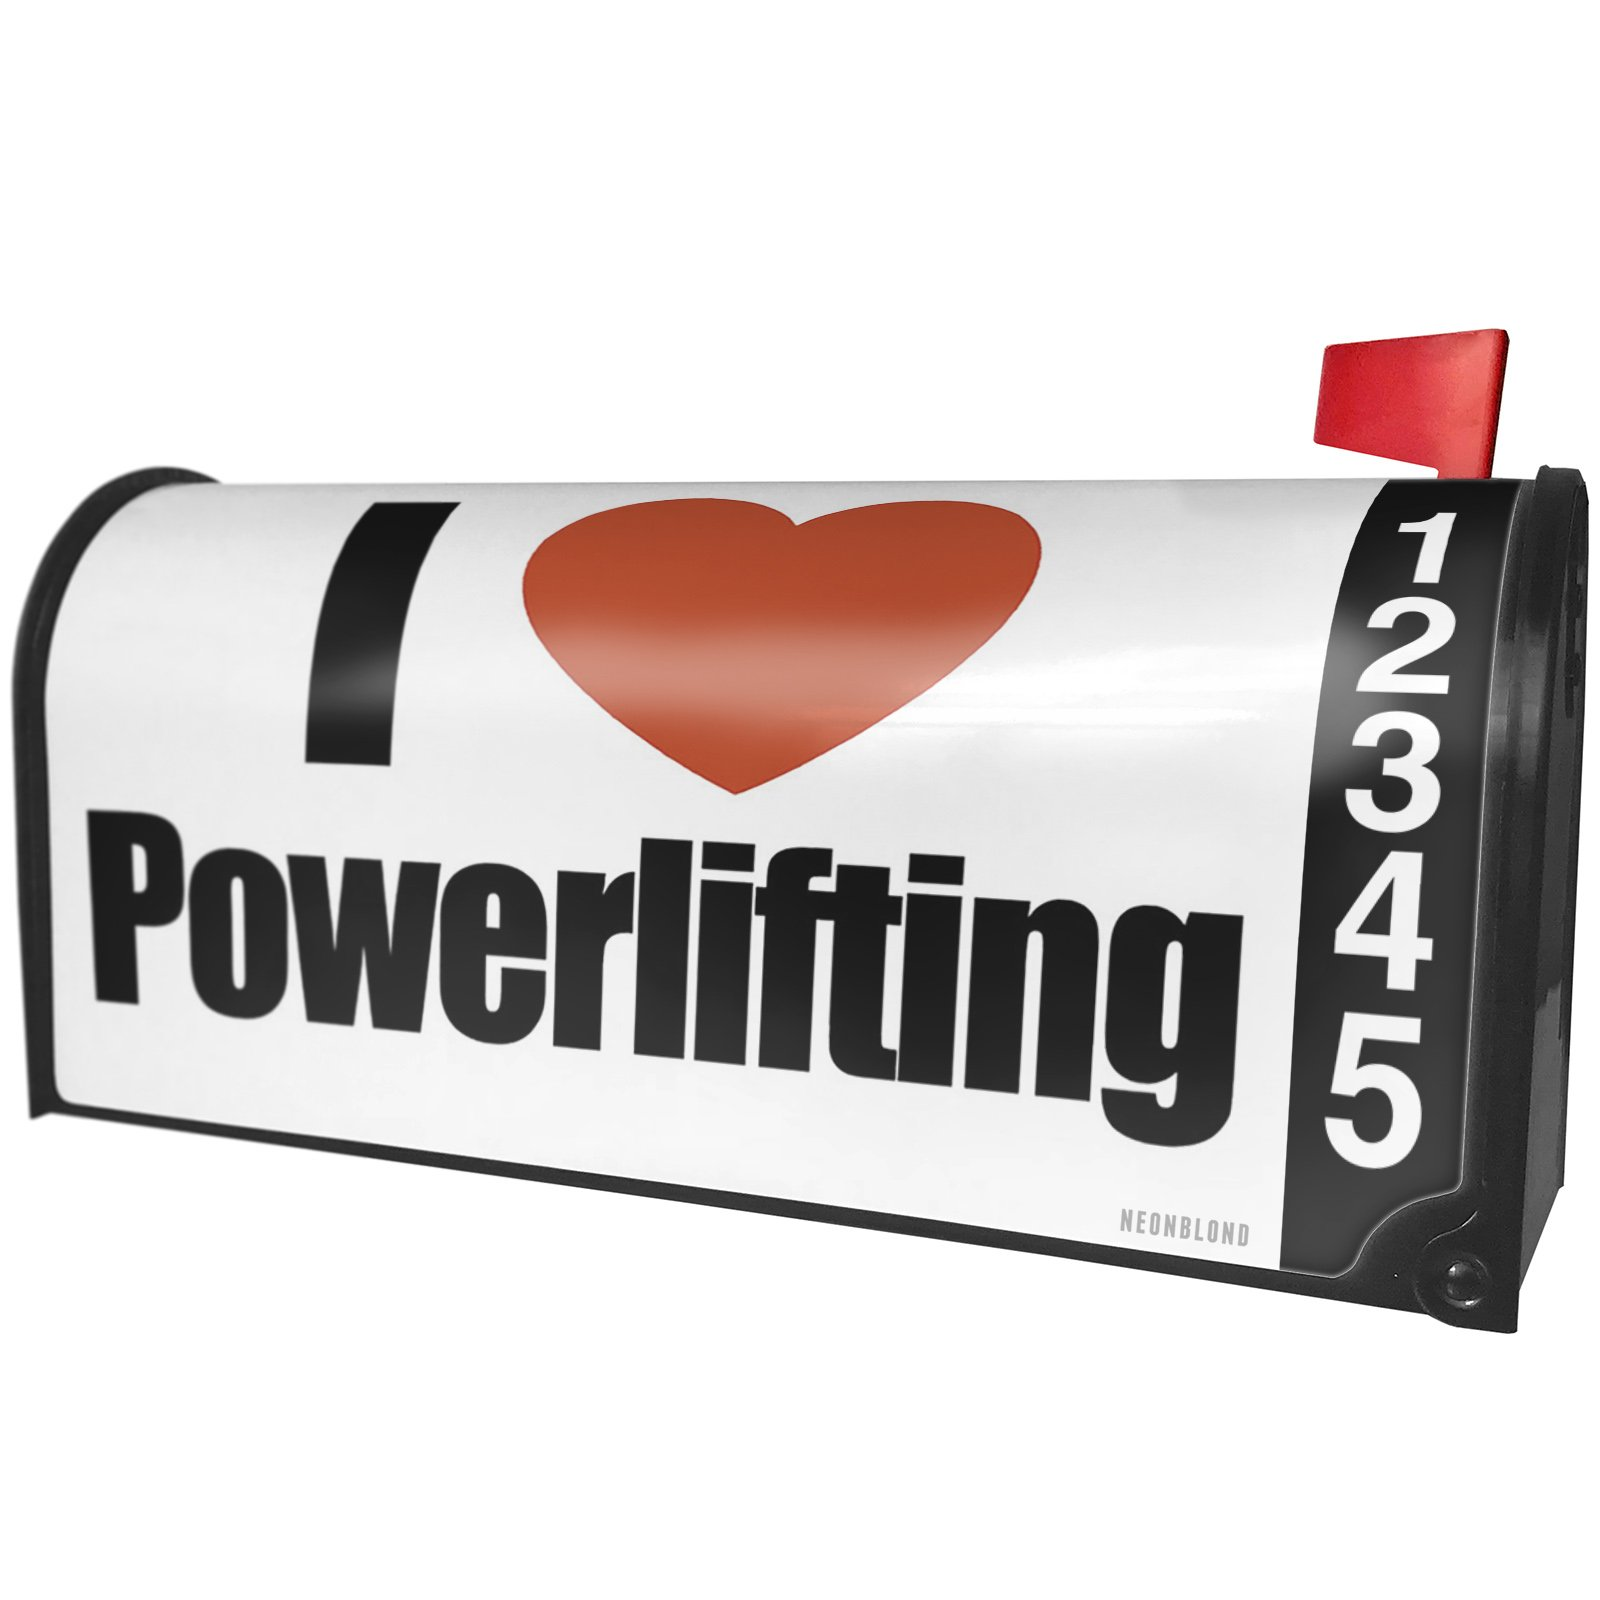 NEONBLOND I Love Powerlifting Magnetic Mailbox Cover Custom Numbers